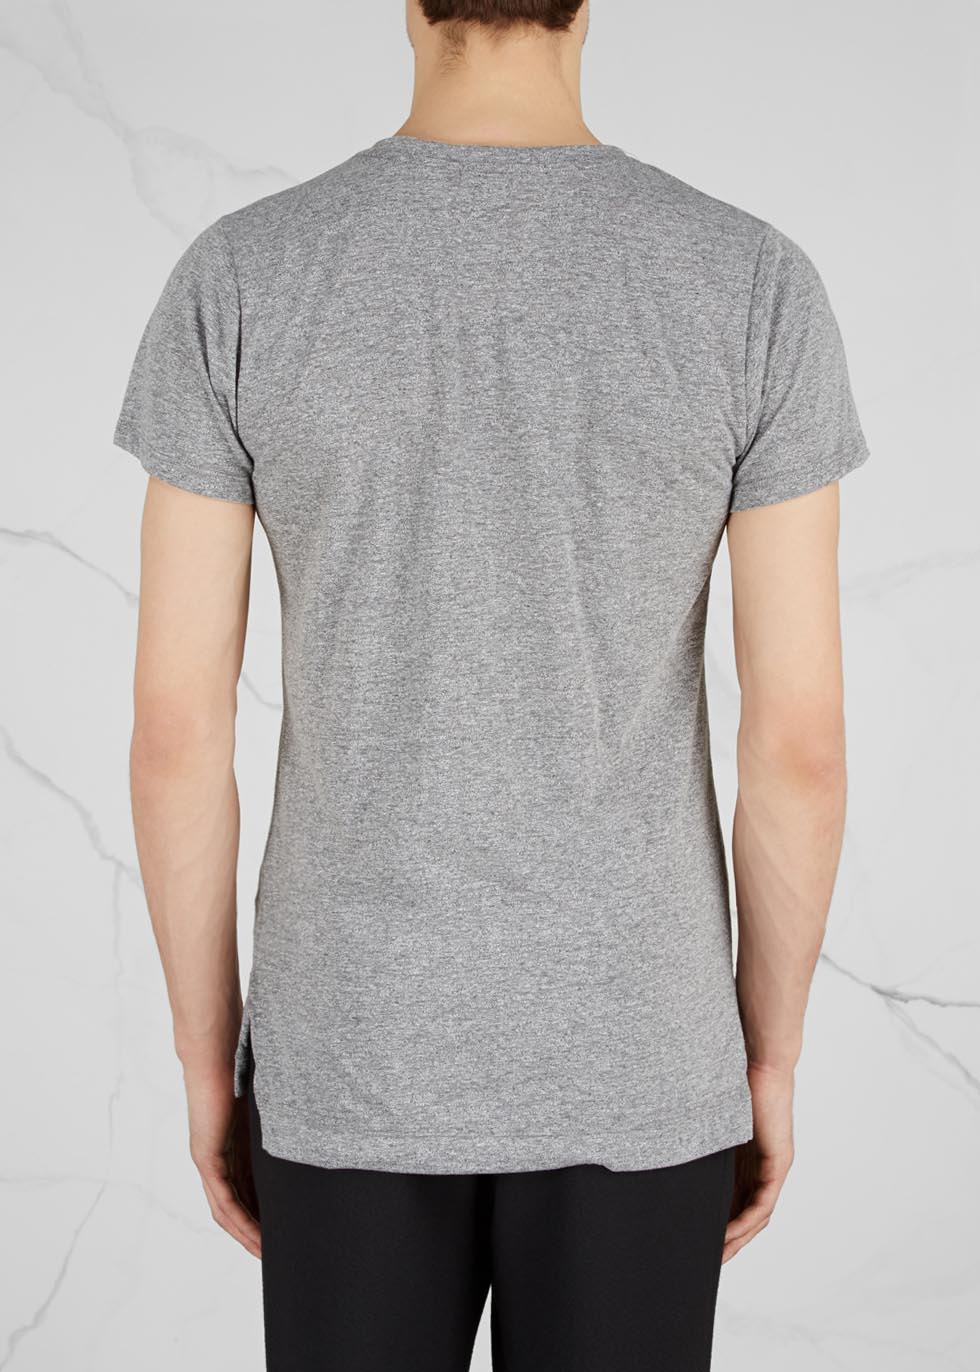 Mercer grey jersey T-shirt - John Elliott